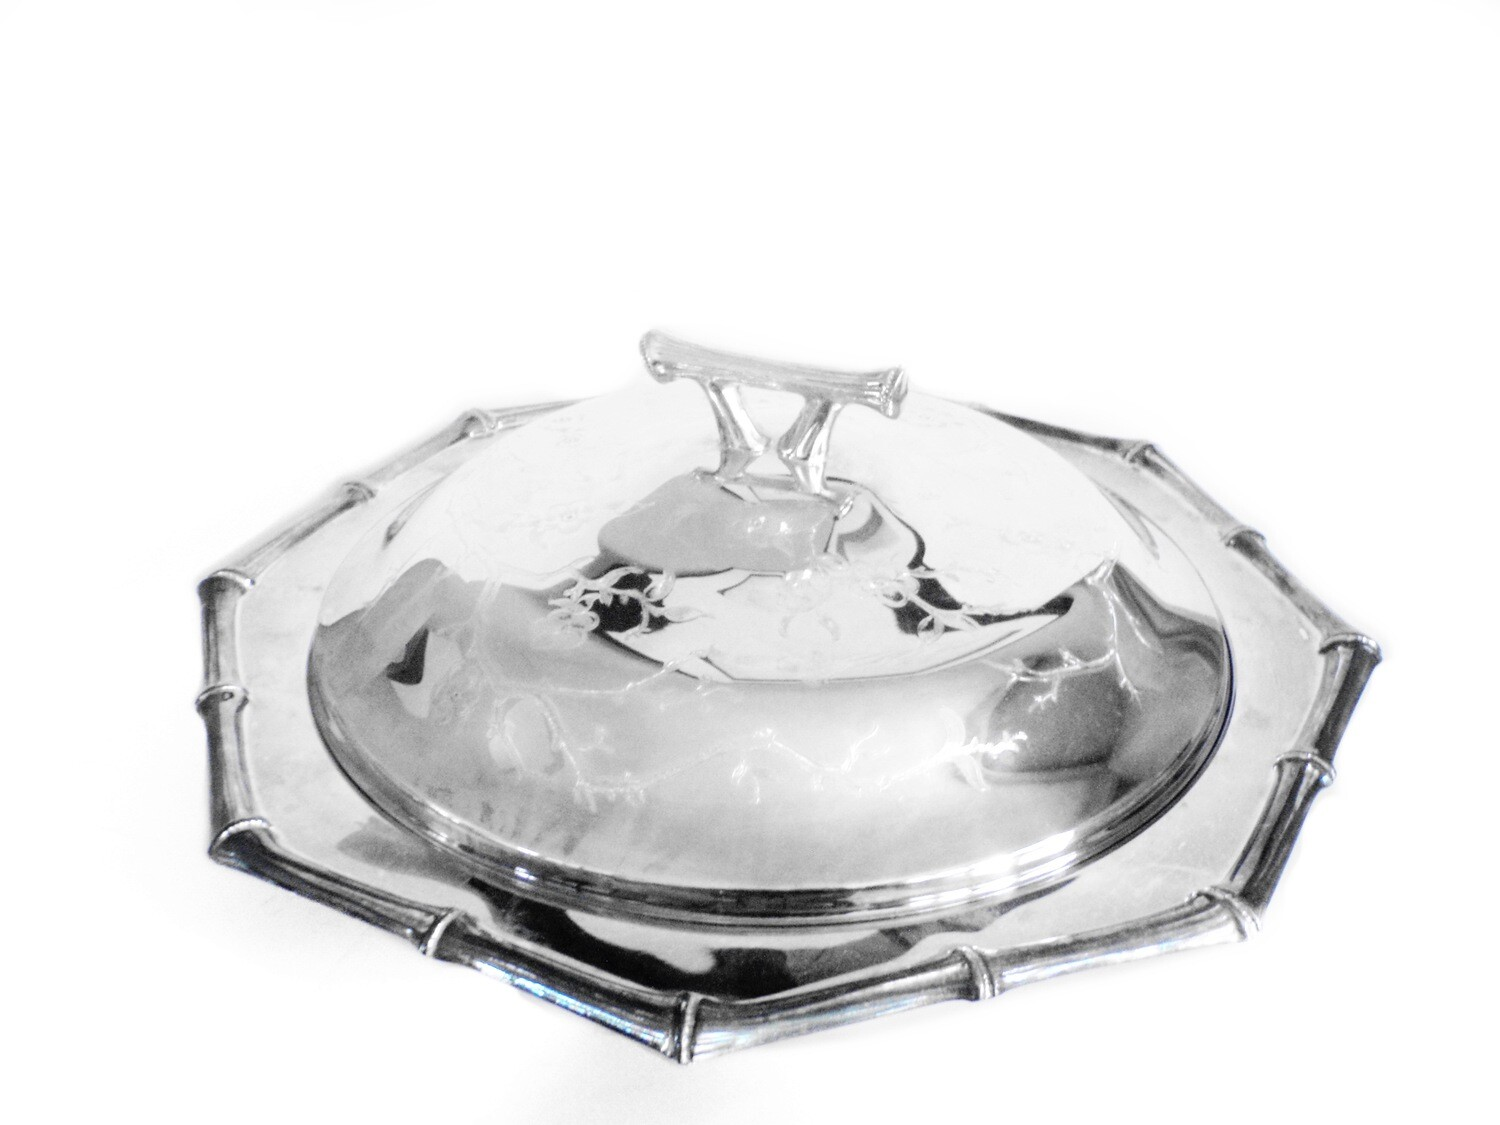 Vintage Silver Asian Inspired Lidded Casserole Server